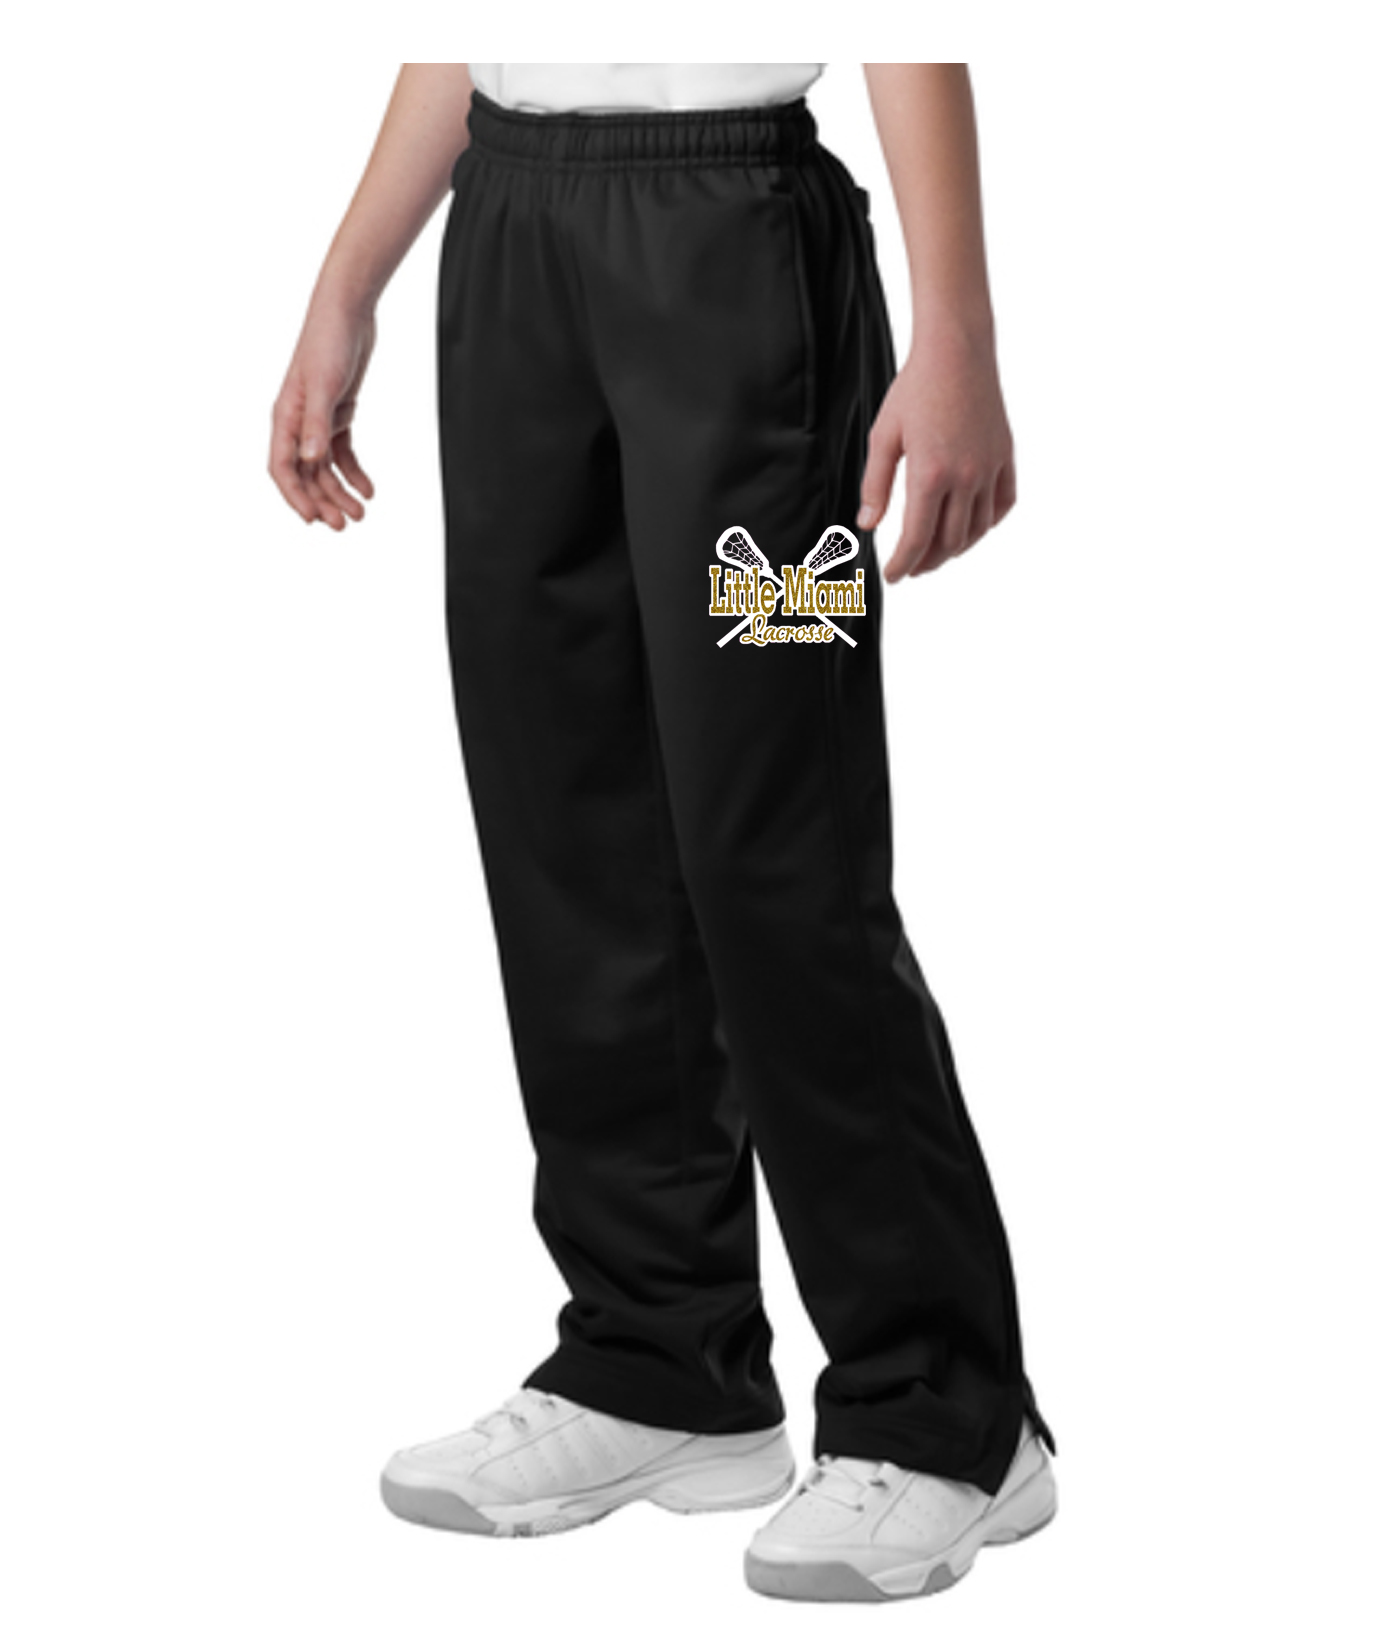 LM PST91_YPST91 Pants with Small LAX Sticks